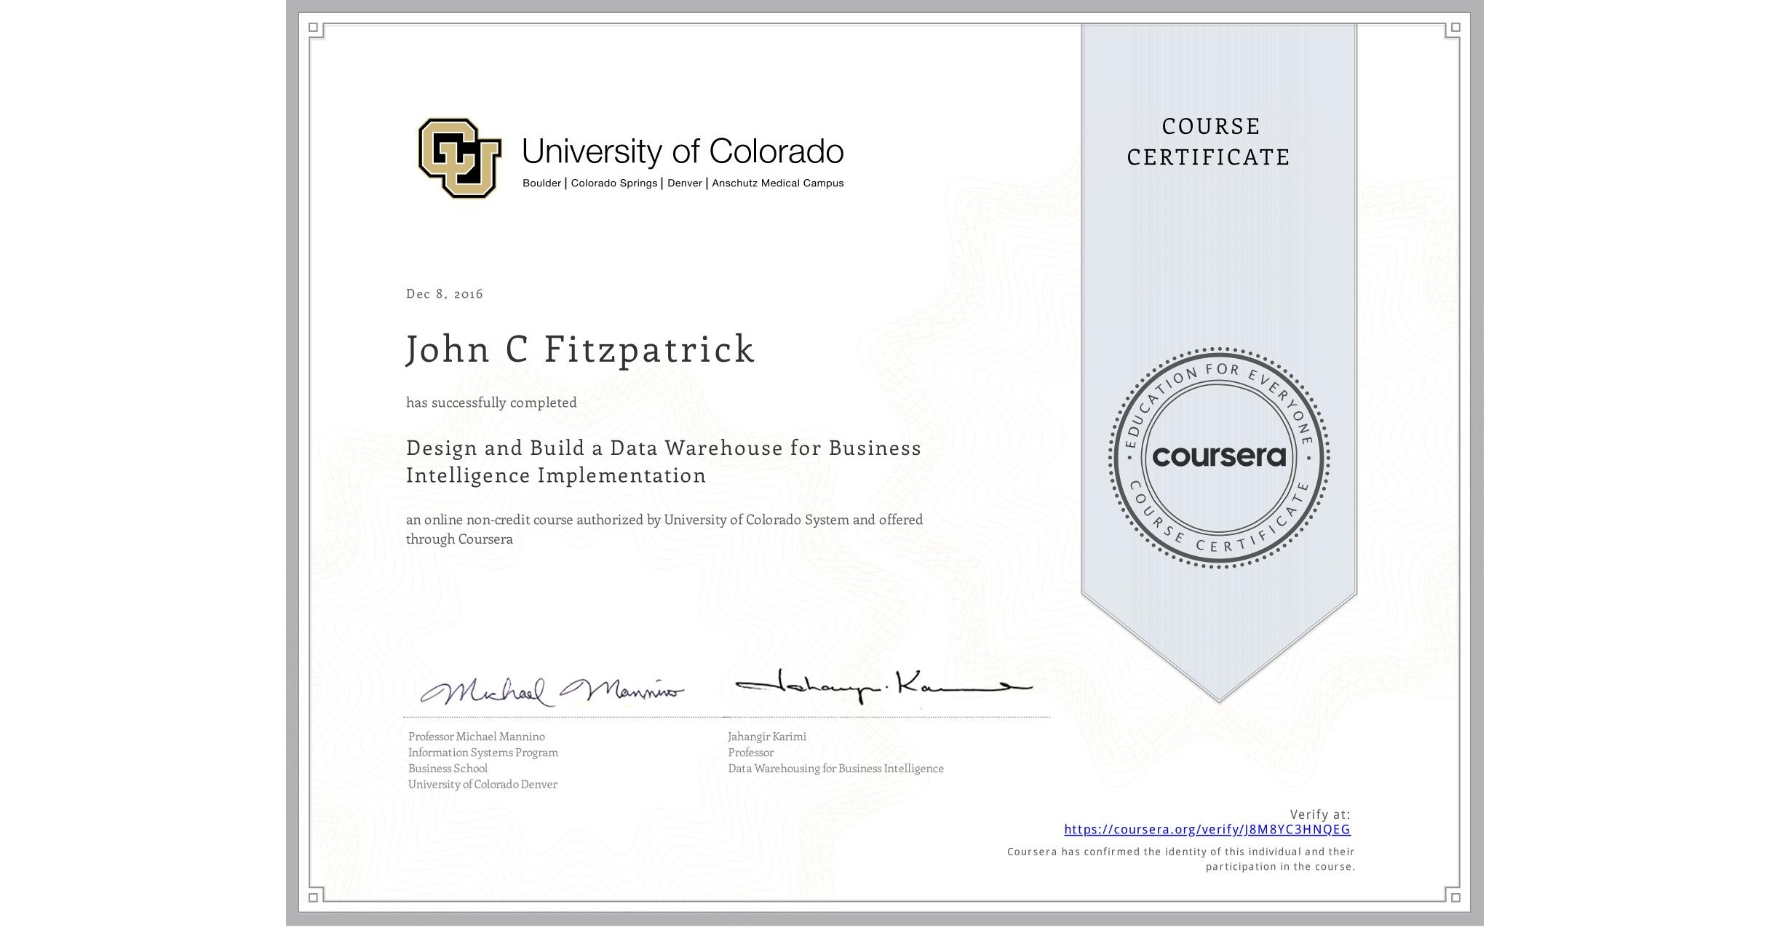 View certificate for John C Fitzpatrick, Design and Build a Data Warehouse for Business Intelligence Implementation, an online non-credit course authorized by University of Colorado System and offered through Coursera